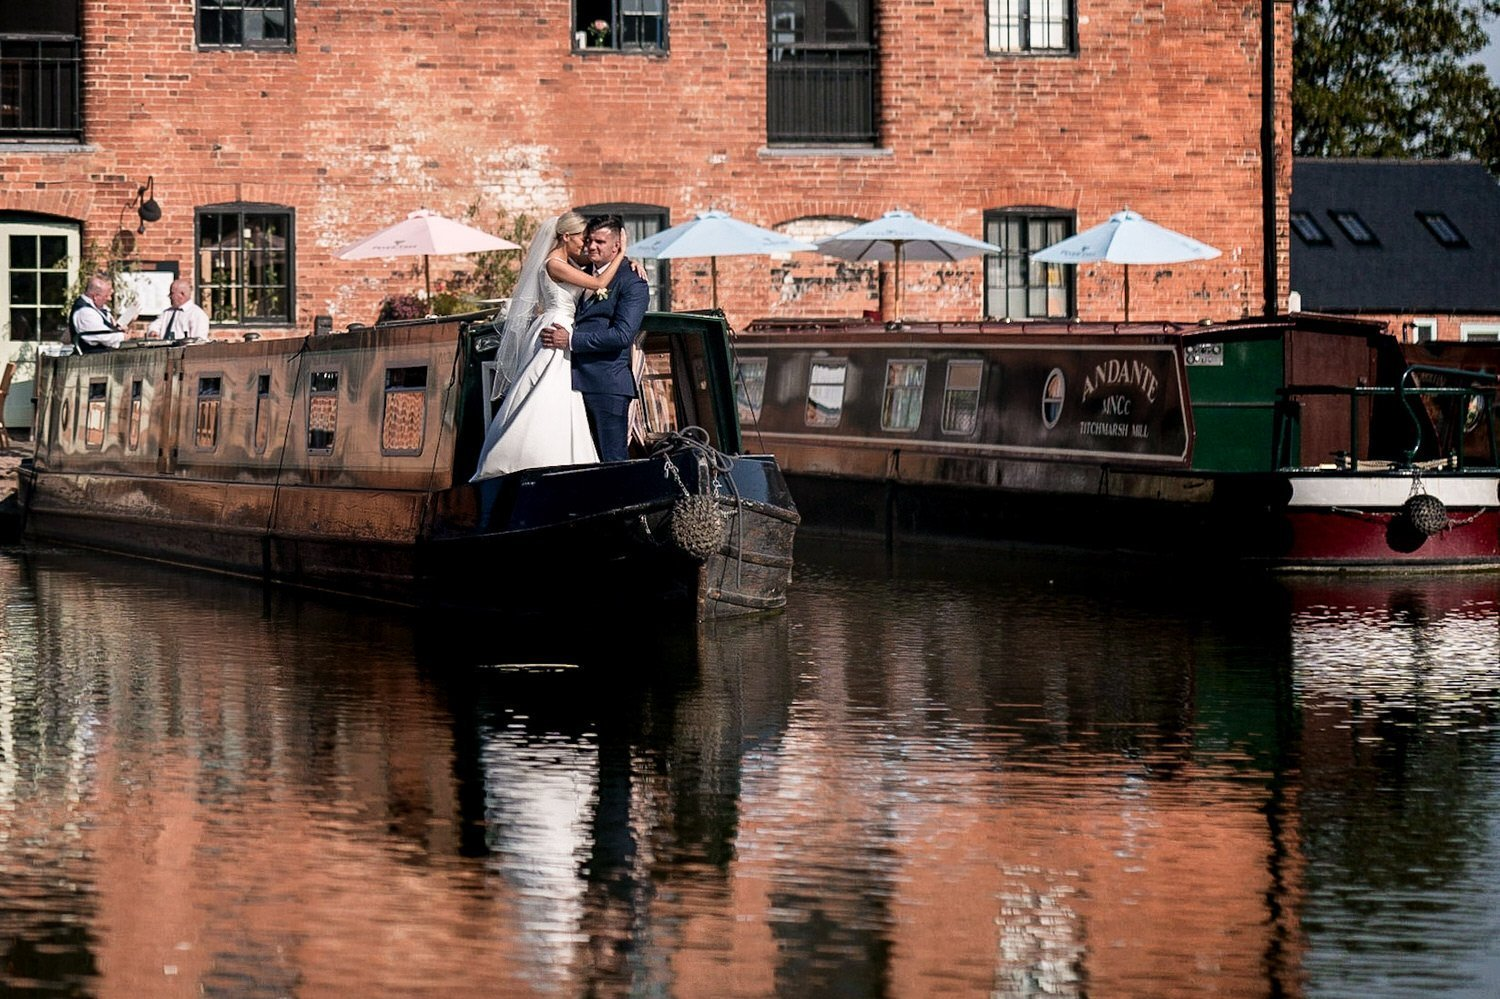 The Waterfront Market Harborough Weddings Photography bride and groom embracing on the front step of a canal barge with the venue behind them